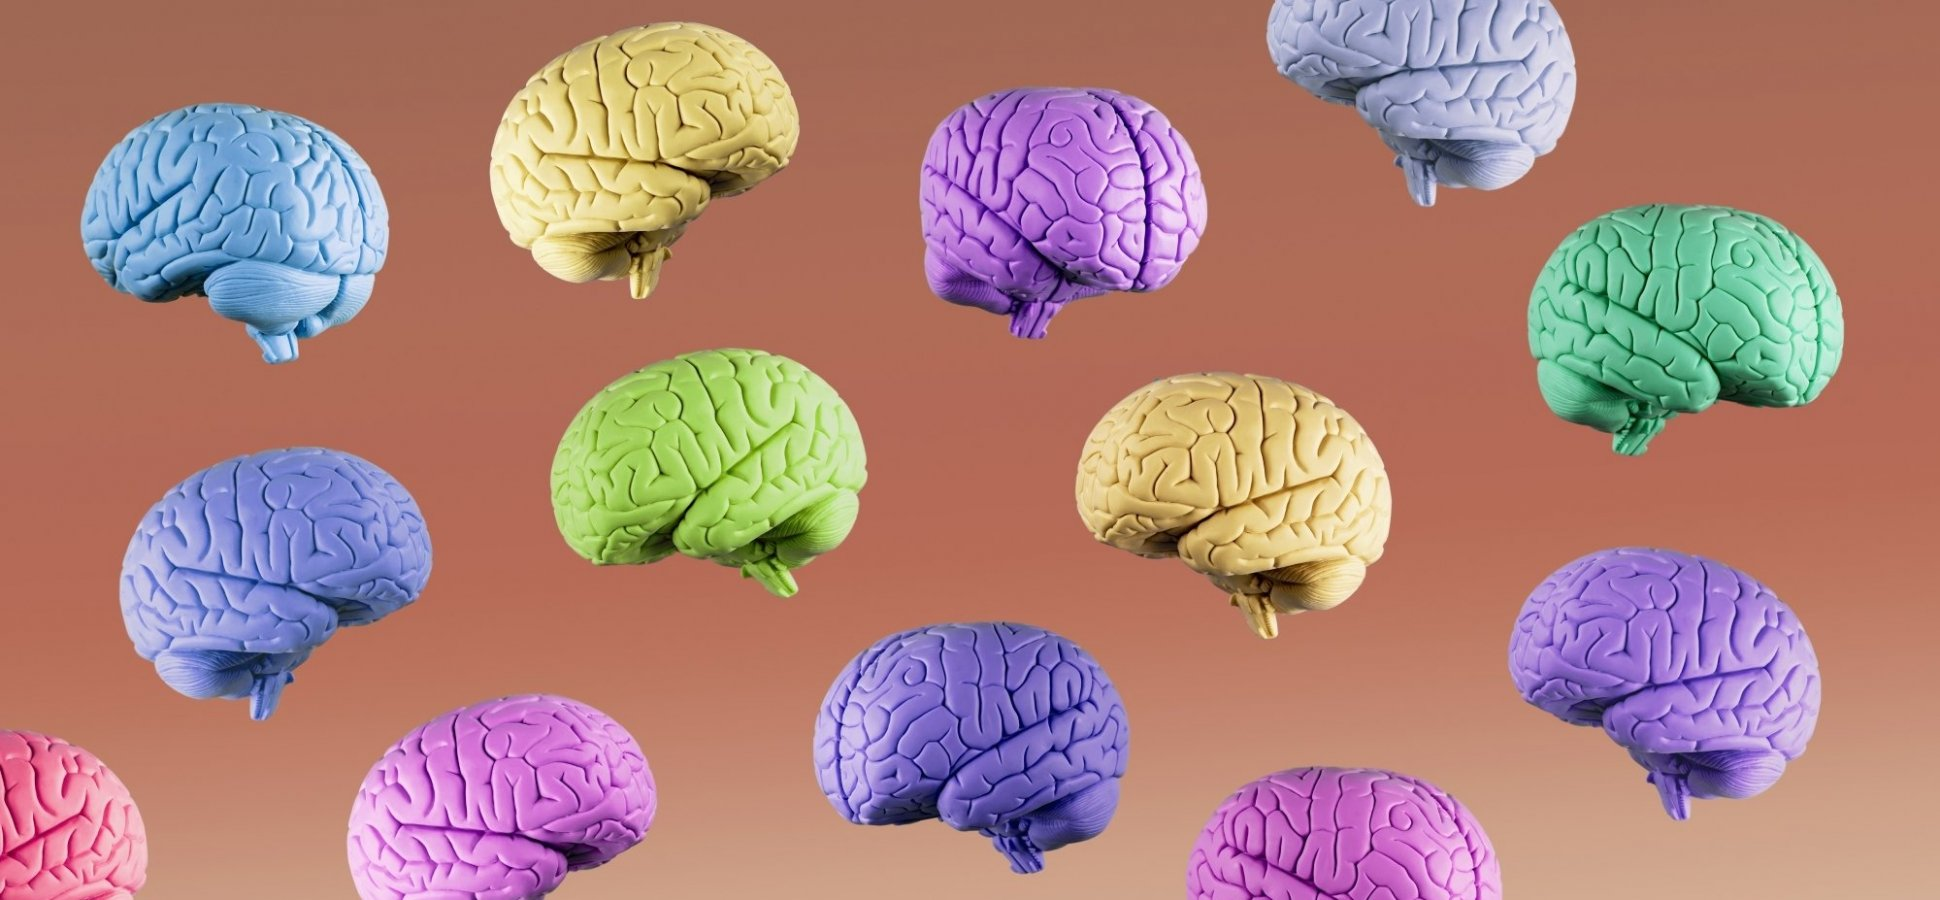 Want a Healthy Brain? Stanford Neuroscientists Say Doing This 1 Easy Activity Improves Memory, Boosts Mood, and Prevents Dementia